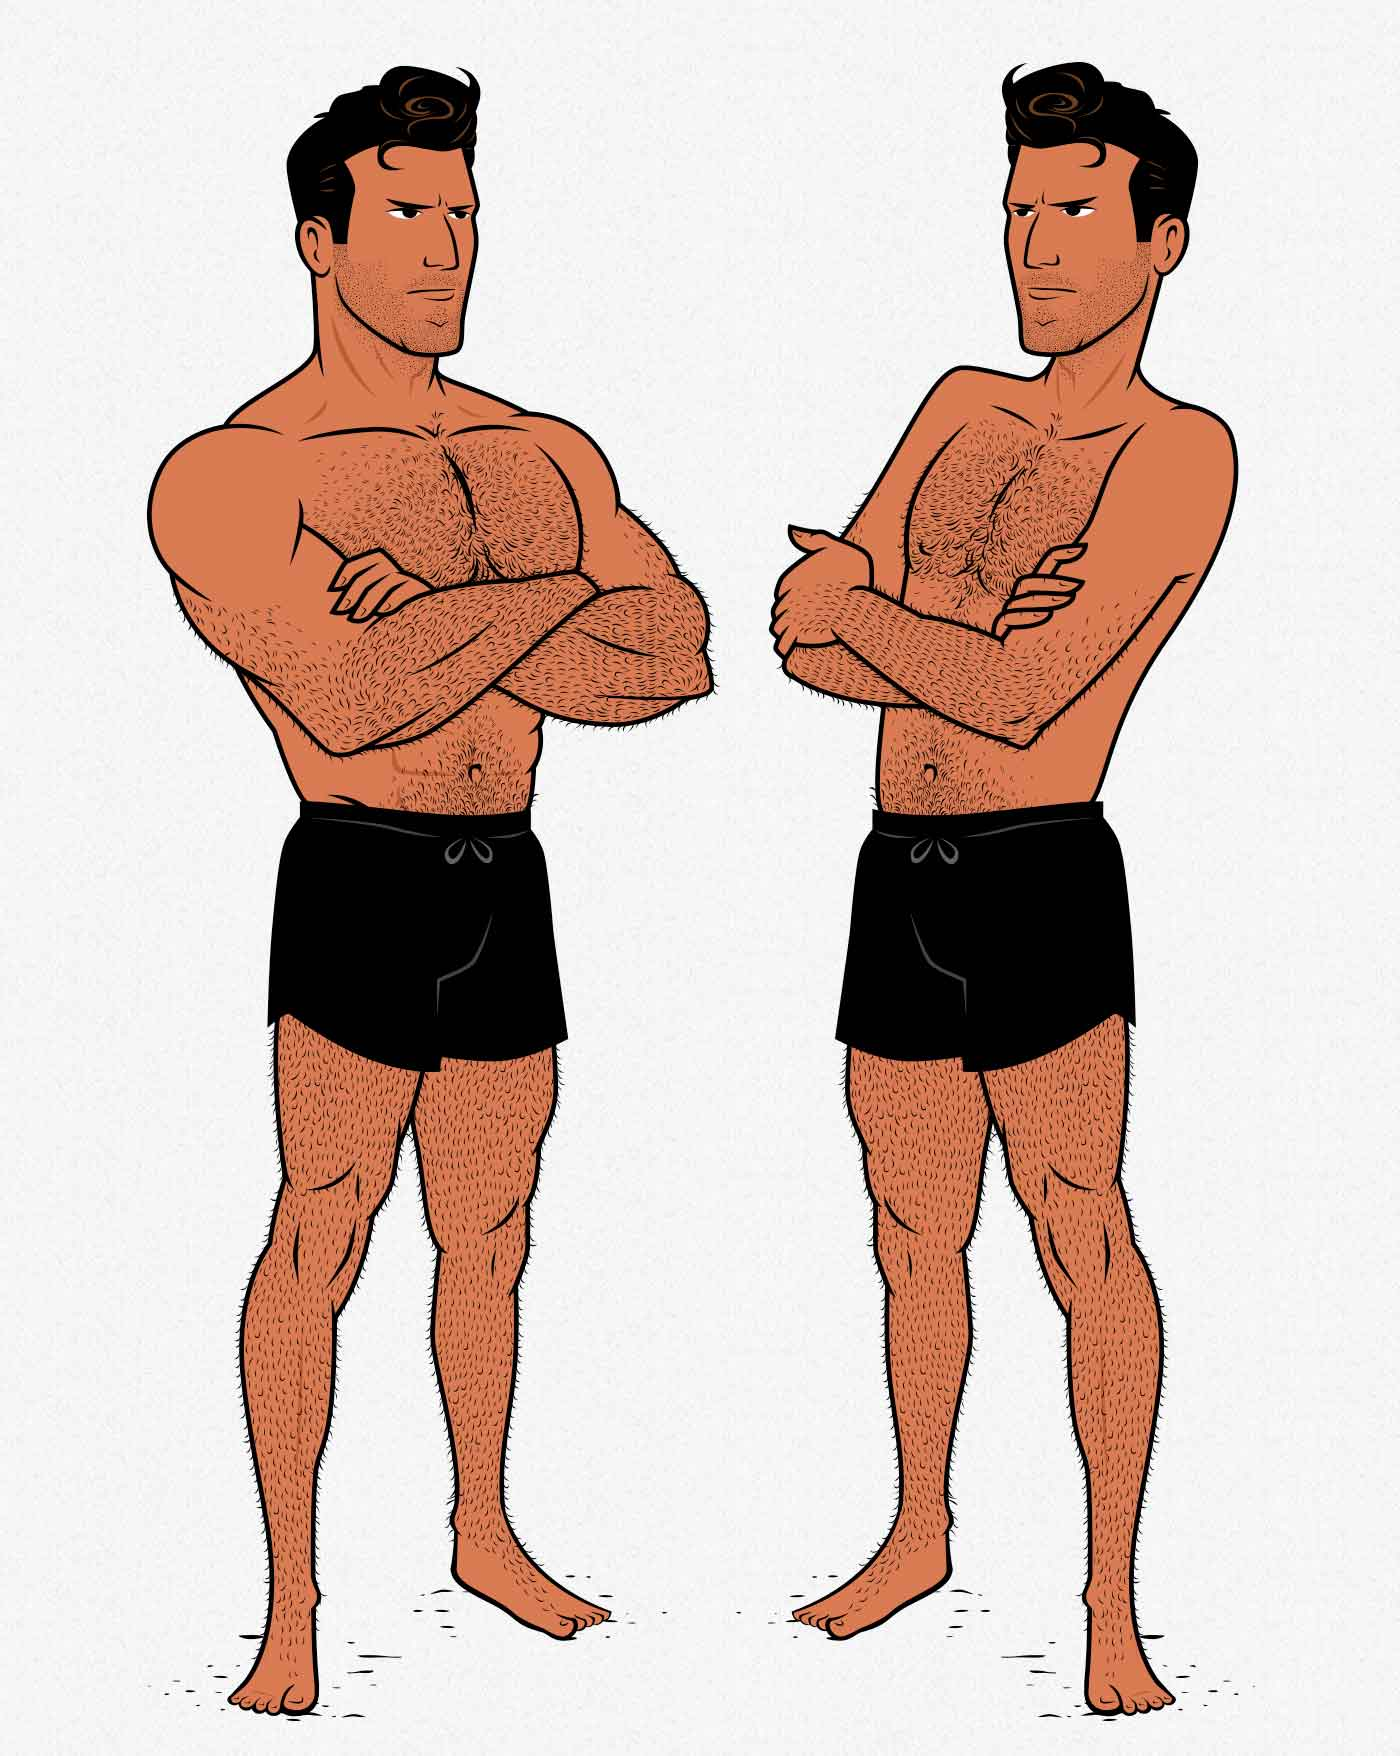 Illustration showing a lean, muscular bodybuilder and an athletic, healthy man.